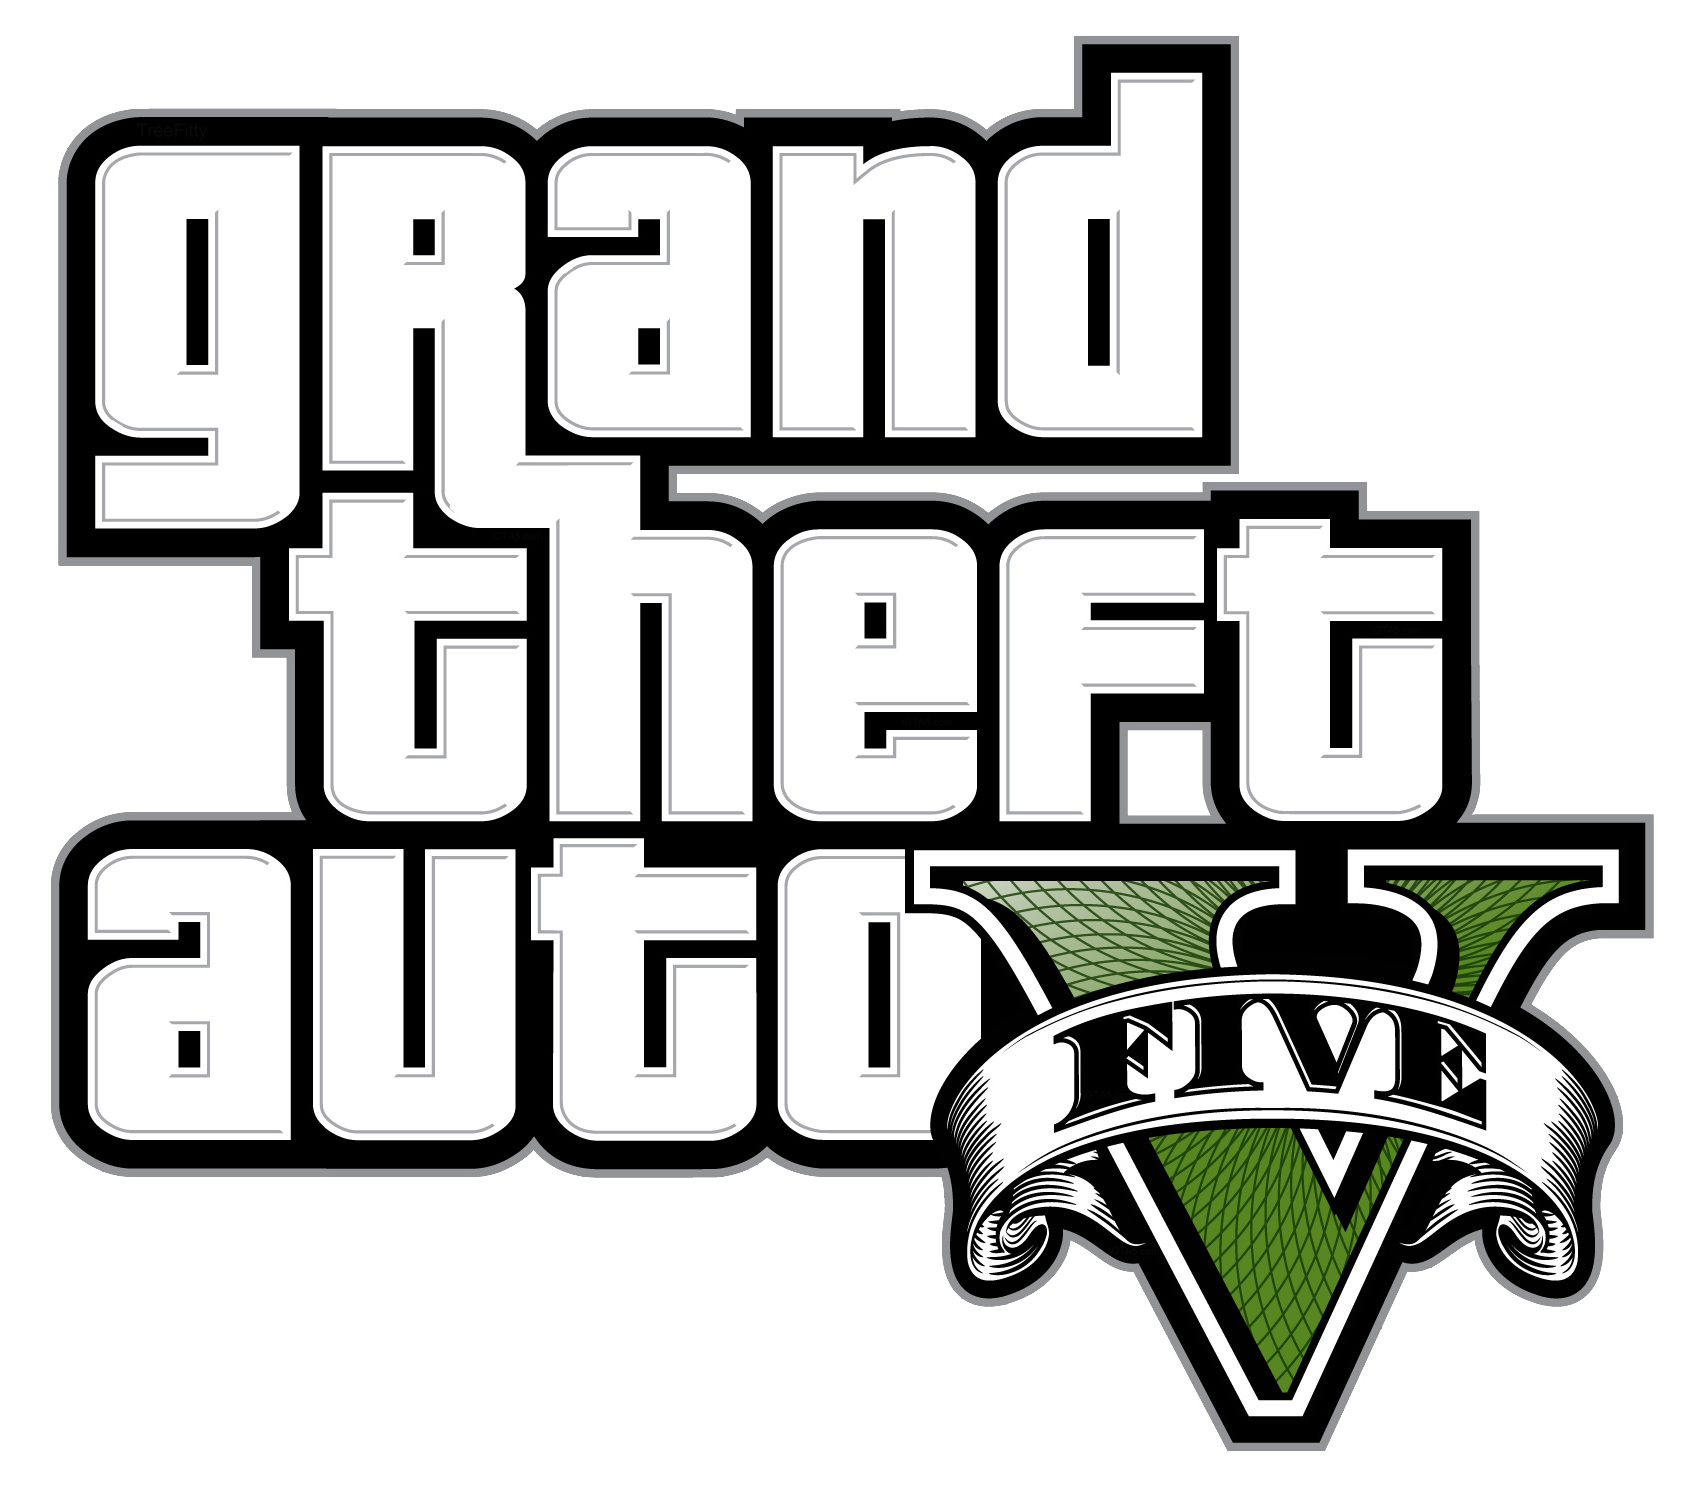 6387 Gta Grand Theft Auto Logo Download together with 478155685408755136 likewise 6387 Gta Grand Theft Auto Logo Download additionally  besides Kode Ps 2 Gta. on gta san andreas cheat codes pc all cheats